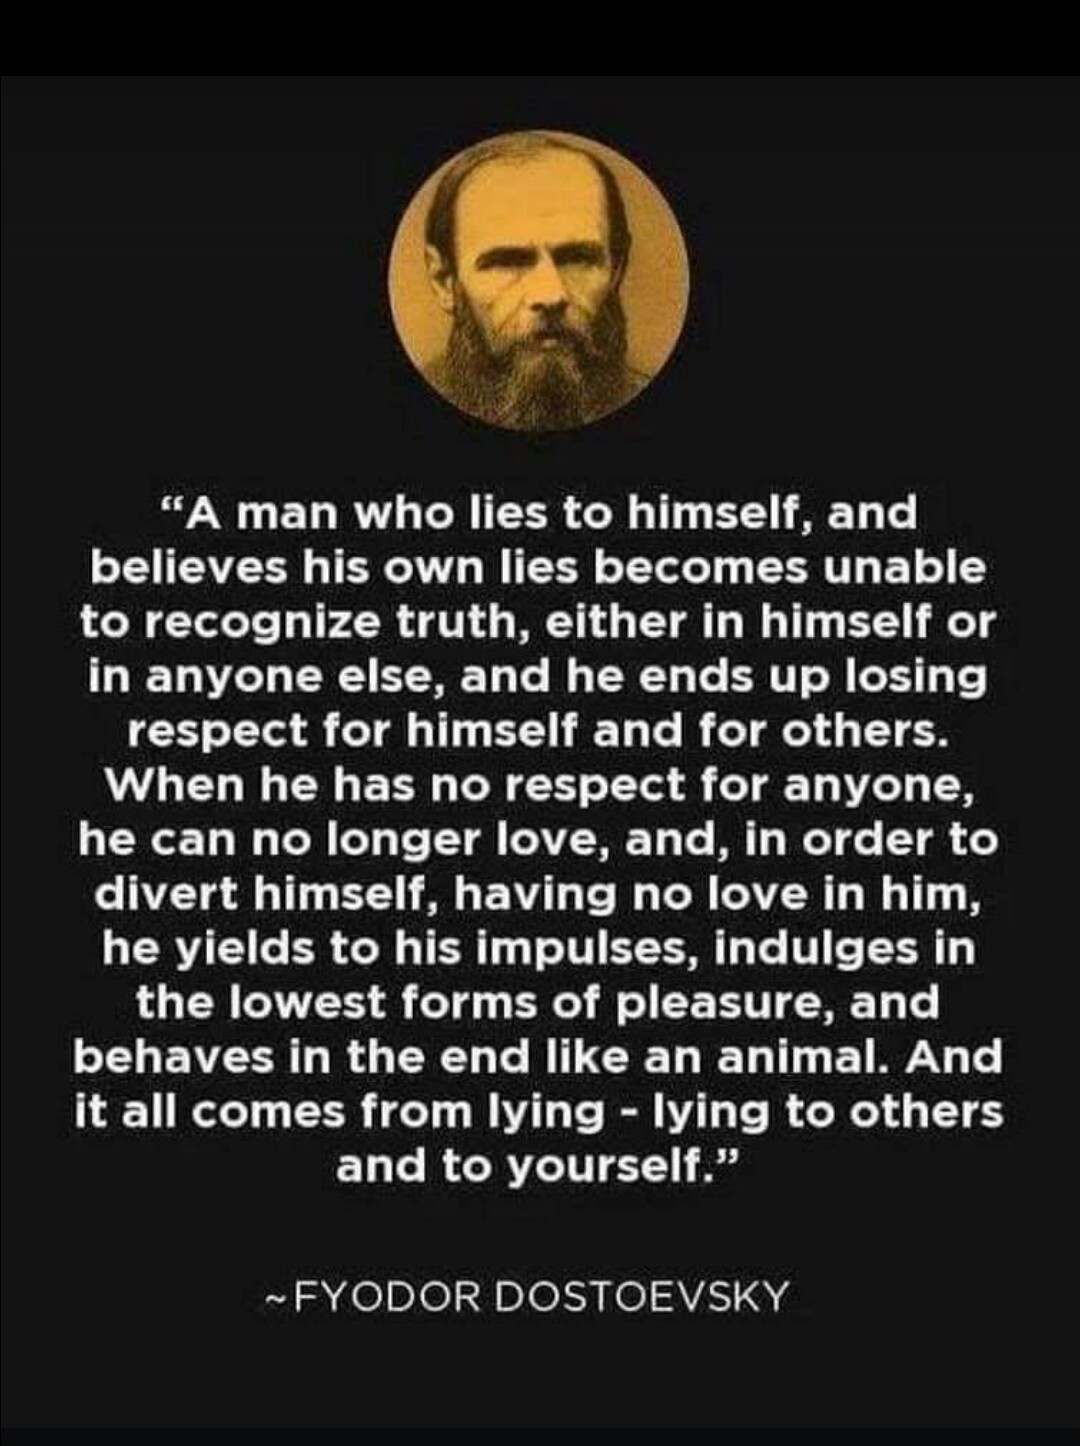 """A man who lies to himself, and believes his own lies becomes unable to recognize truth, either in himself or in anyone else, and he ends up losing respect for himself and for others."" Fyodor Dostoevsky. [1080×1446]"